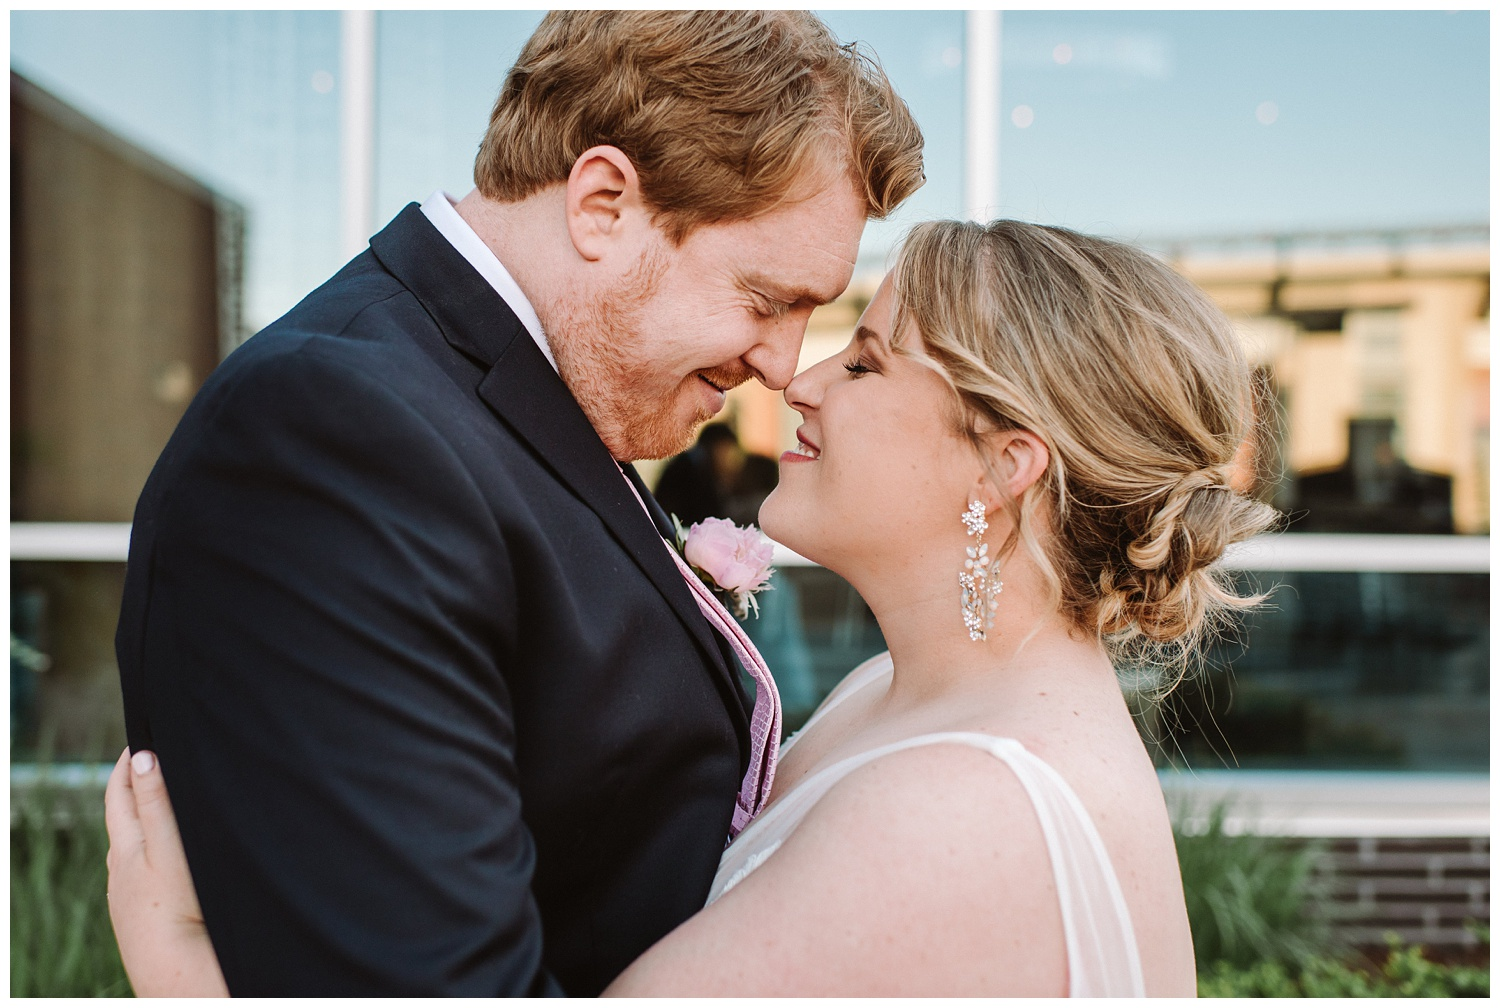 Renaissance Hotel Gillette Stadium Wedding Photographer99.jpg